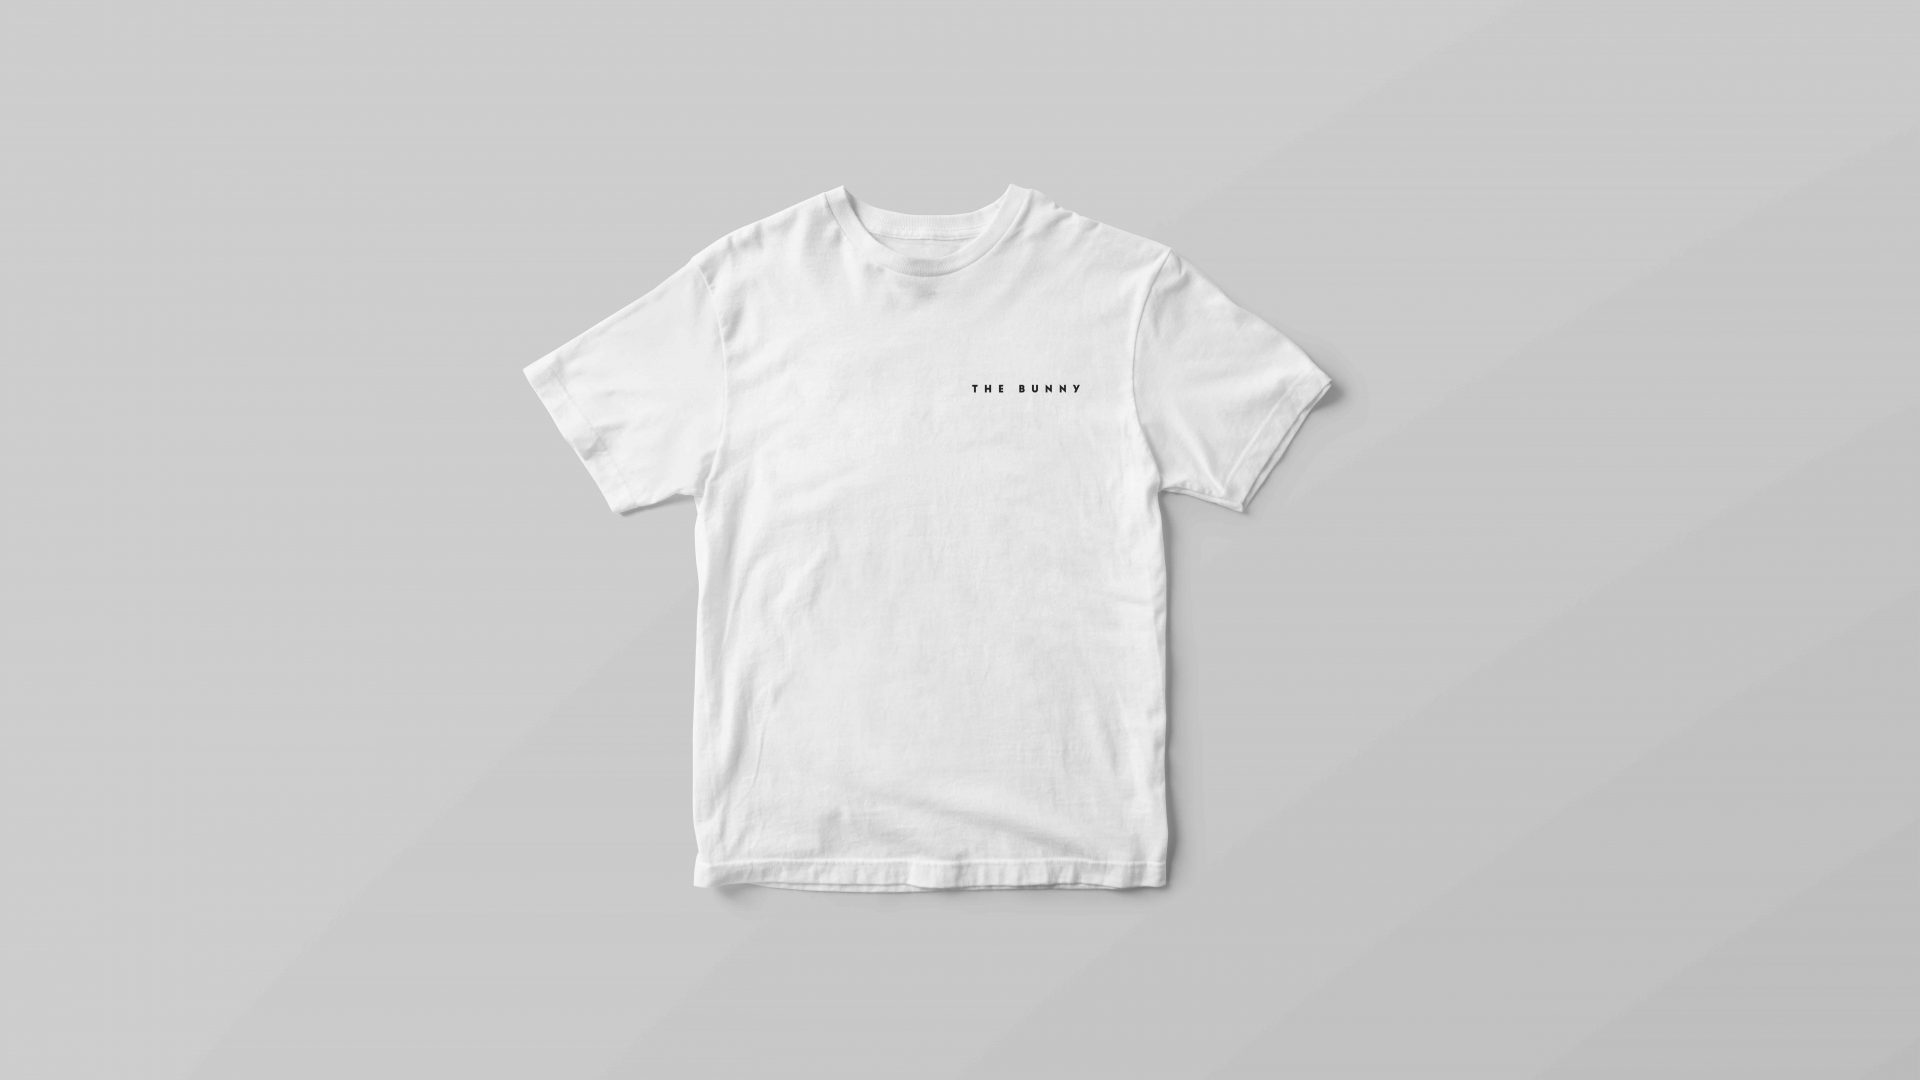 Brand identity design by Crate47. The Bunny bubble tea logo in black on a white T-shirt.